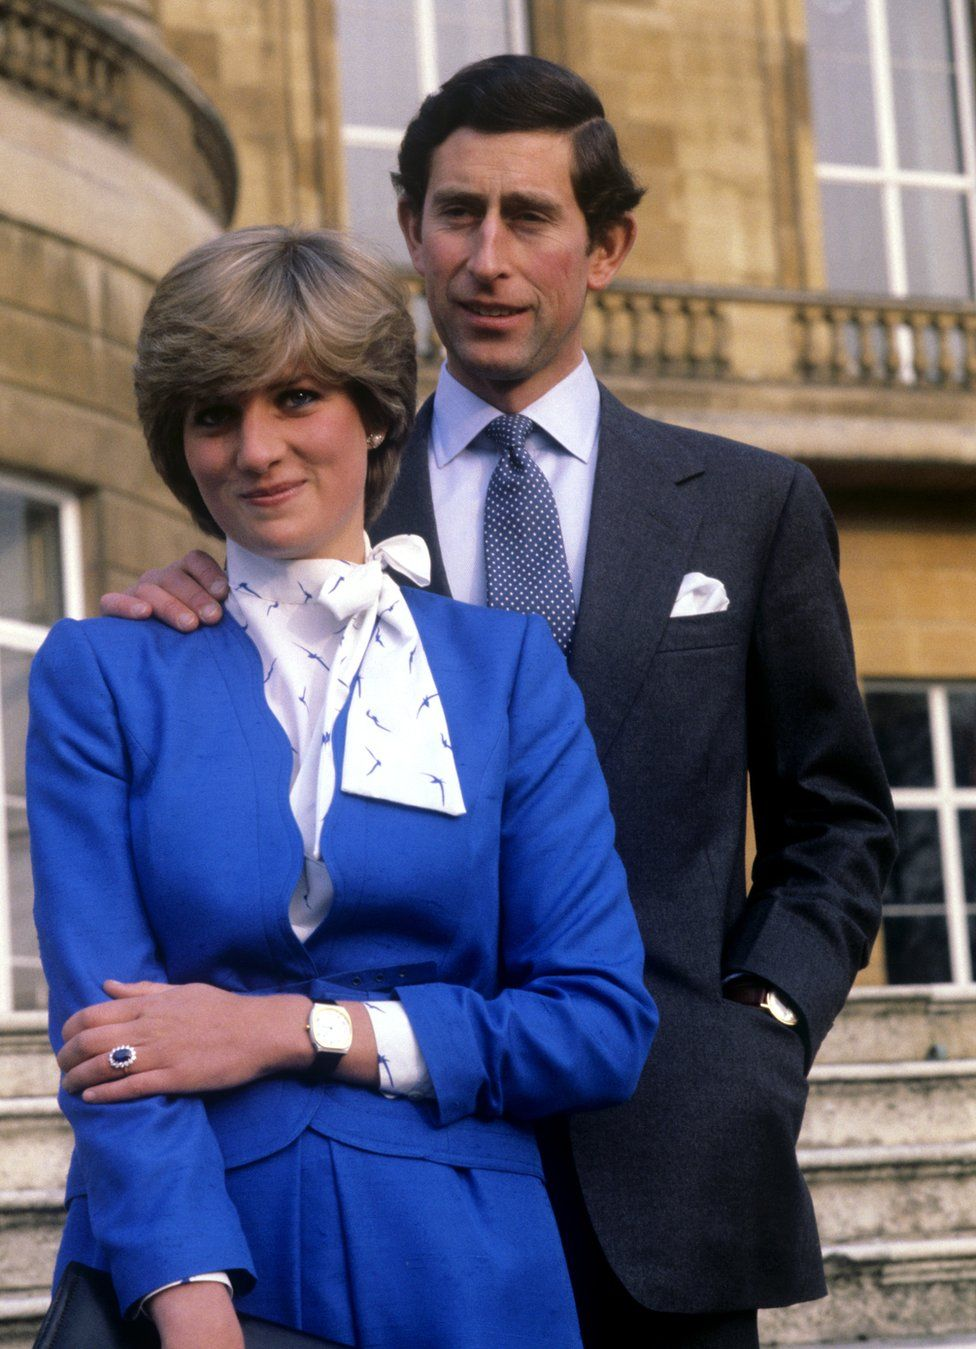 Charles and Lady Diana Spencer at Buckingham Palace after the announcement of their engagement.